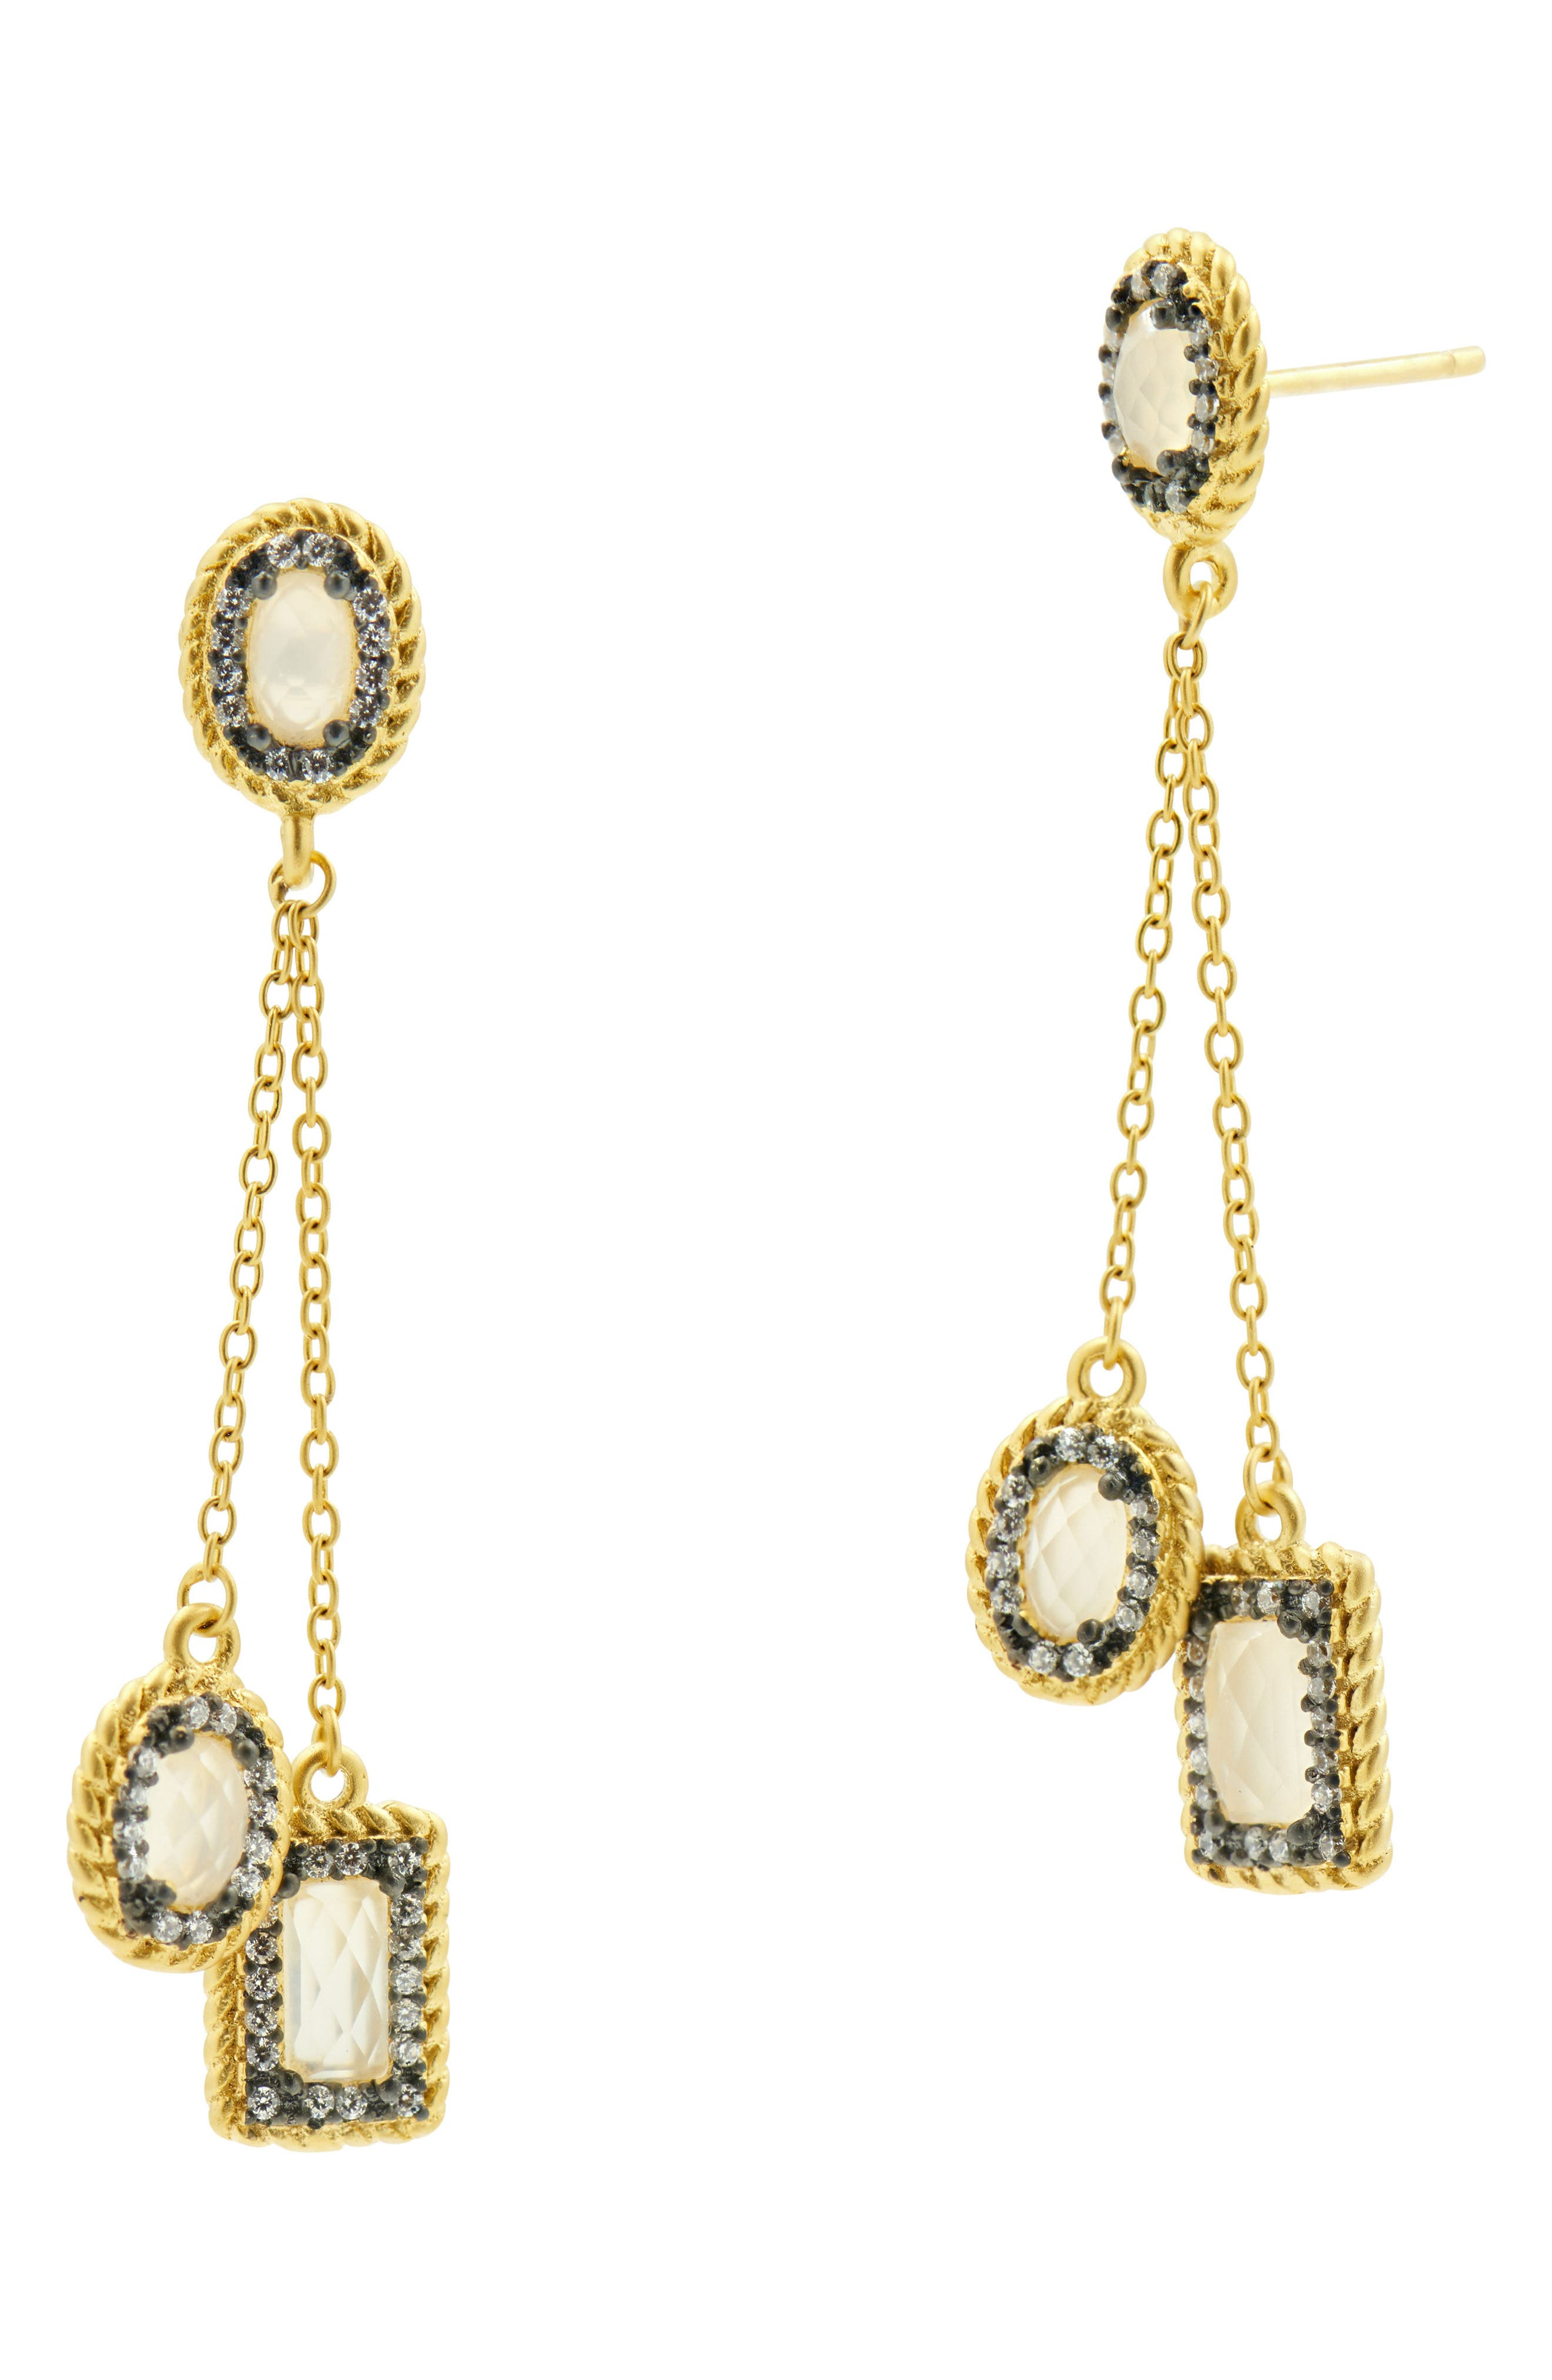 Chain Drop Earrings,                             Main thumbnail 1, color,                             Black/ Gold